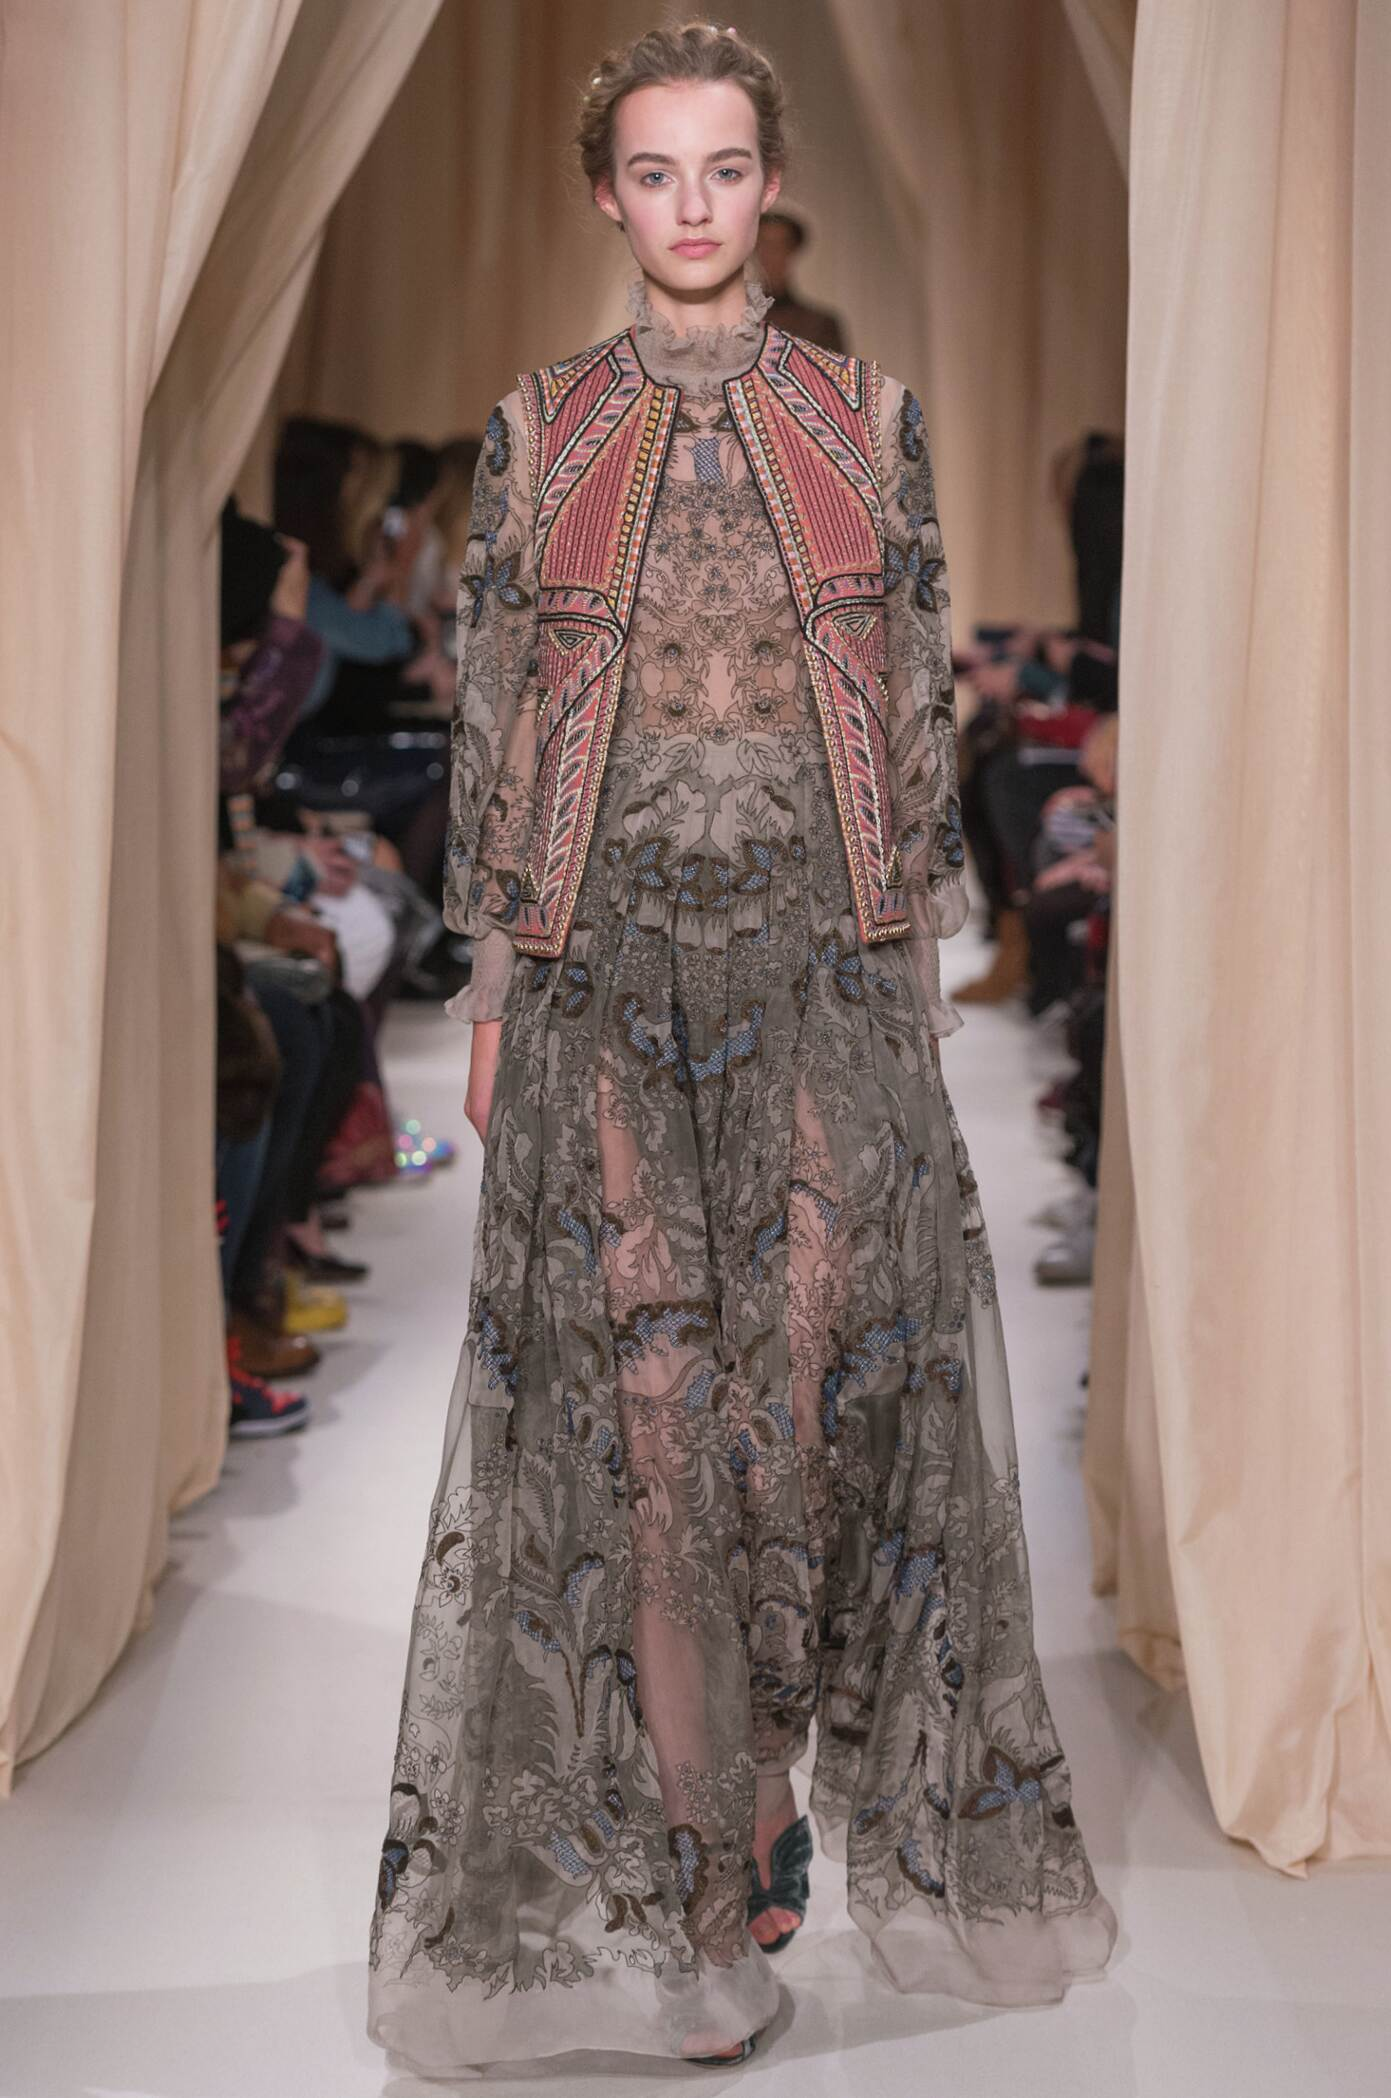 Fashion Model Valentino Haute Couture Collection Catwalk